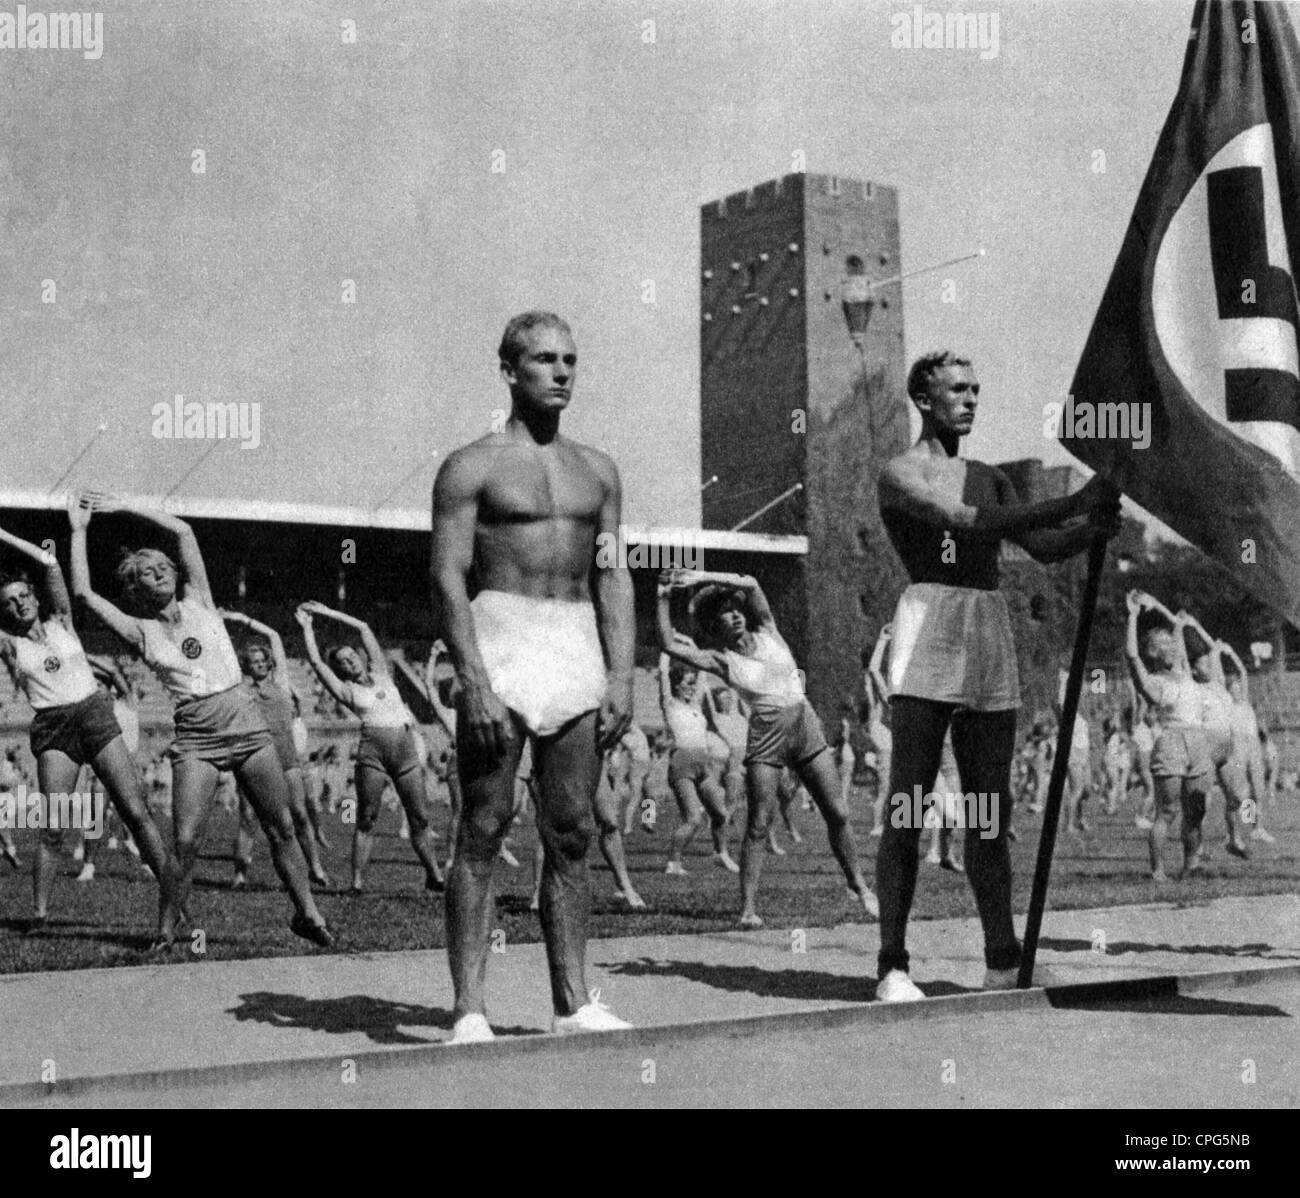 http://c8.alamy.com/comp/CPG5NB/sports-gymnastics-german-gymnasts-1930s-30s-team-flag-swastika-nazi-CPG5NB.jpg